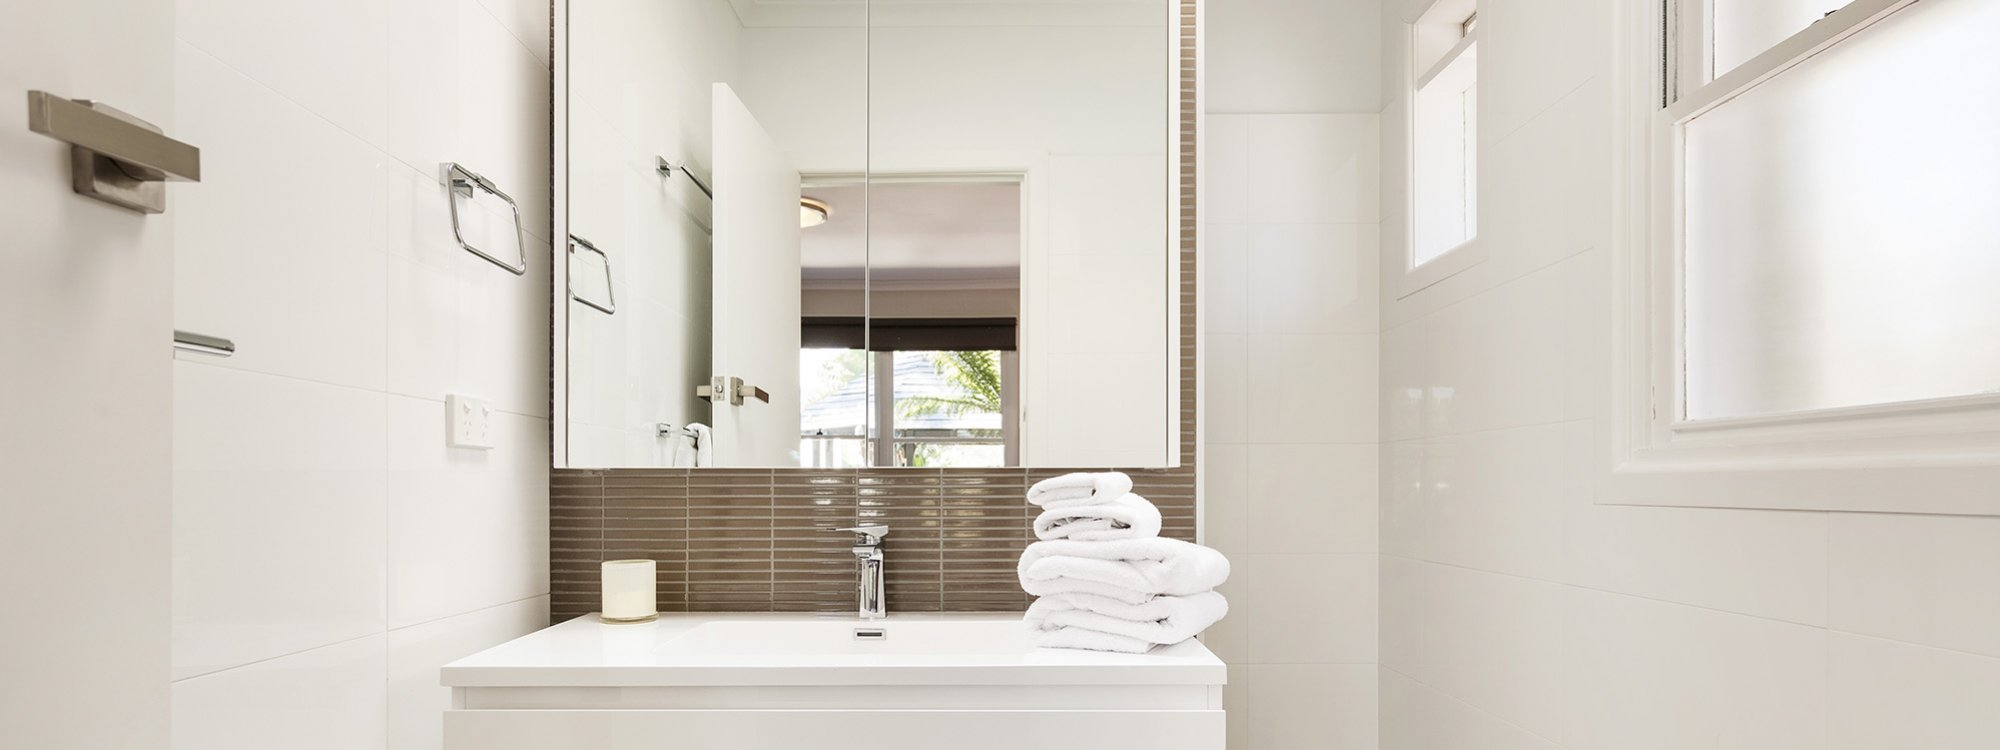 Sandy Breeze 1 - Sandringham - Bathroom b